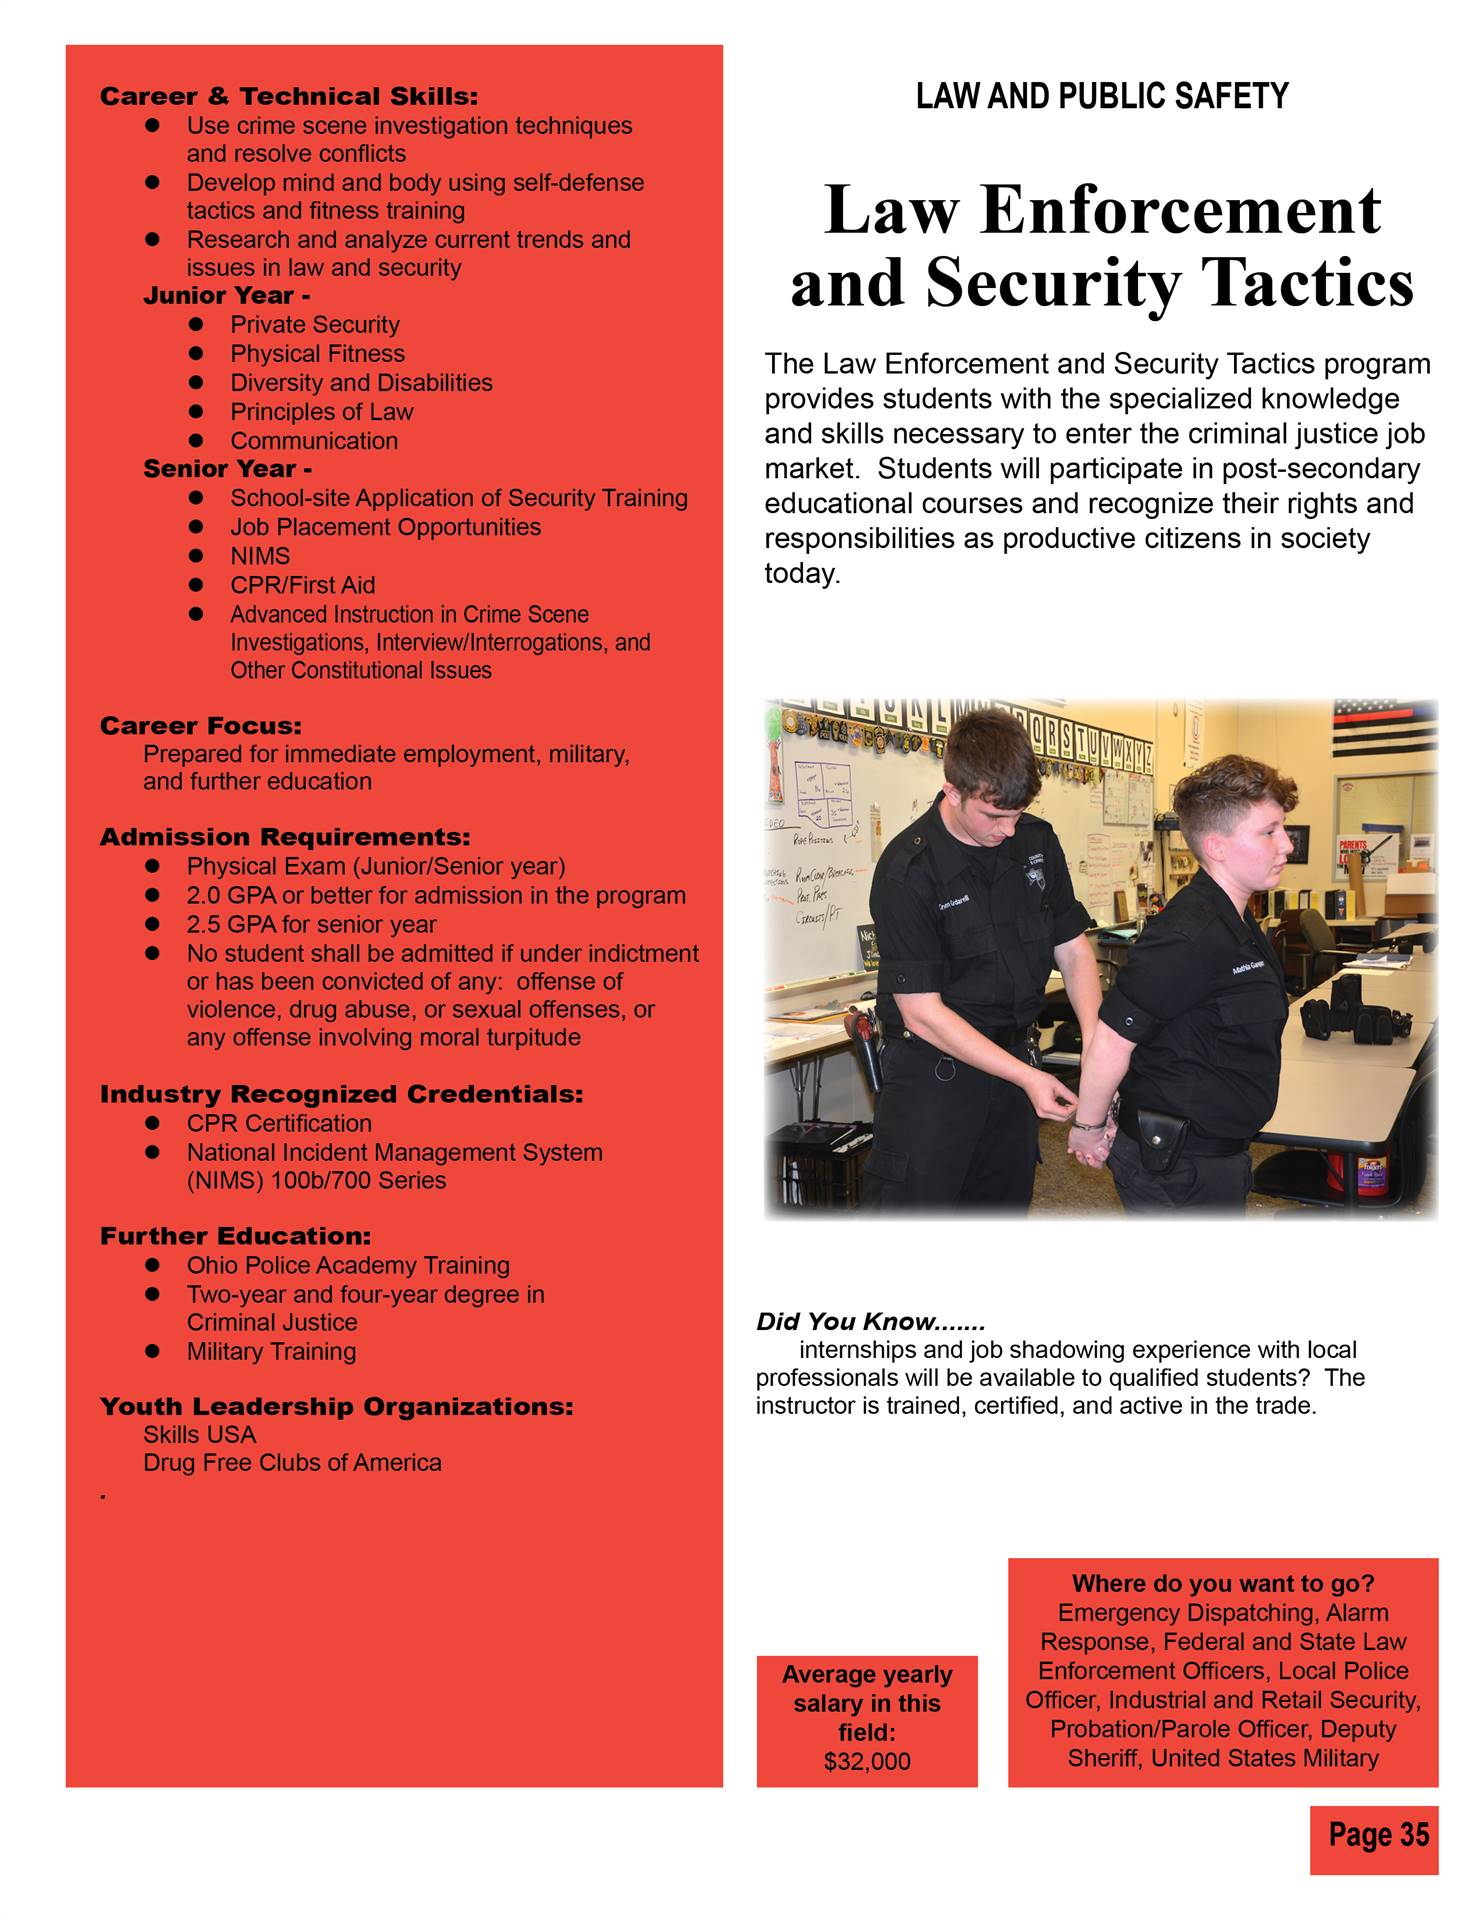 Law Enforcement and Security Tactics